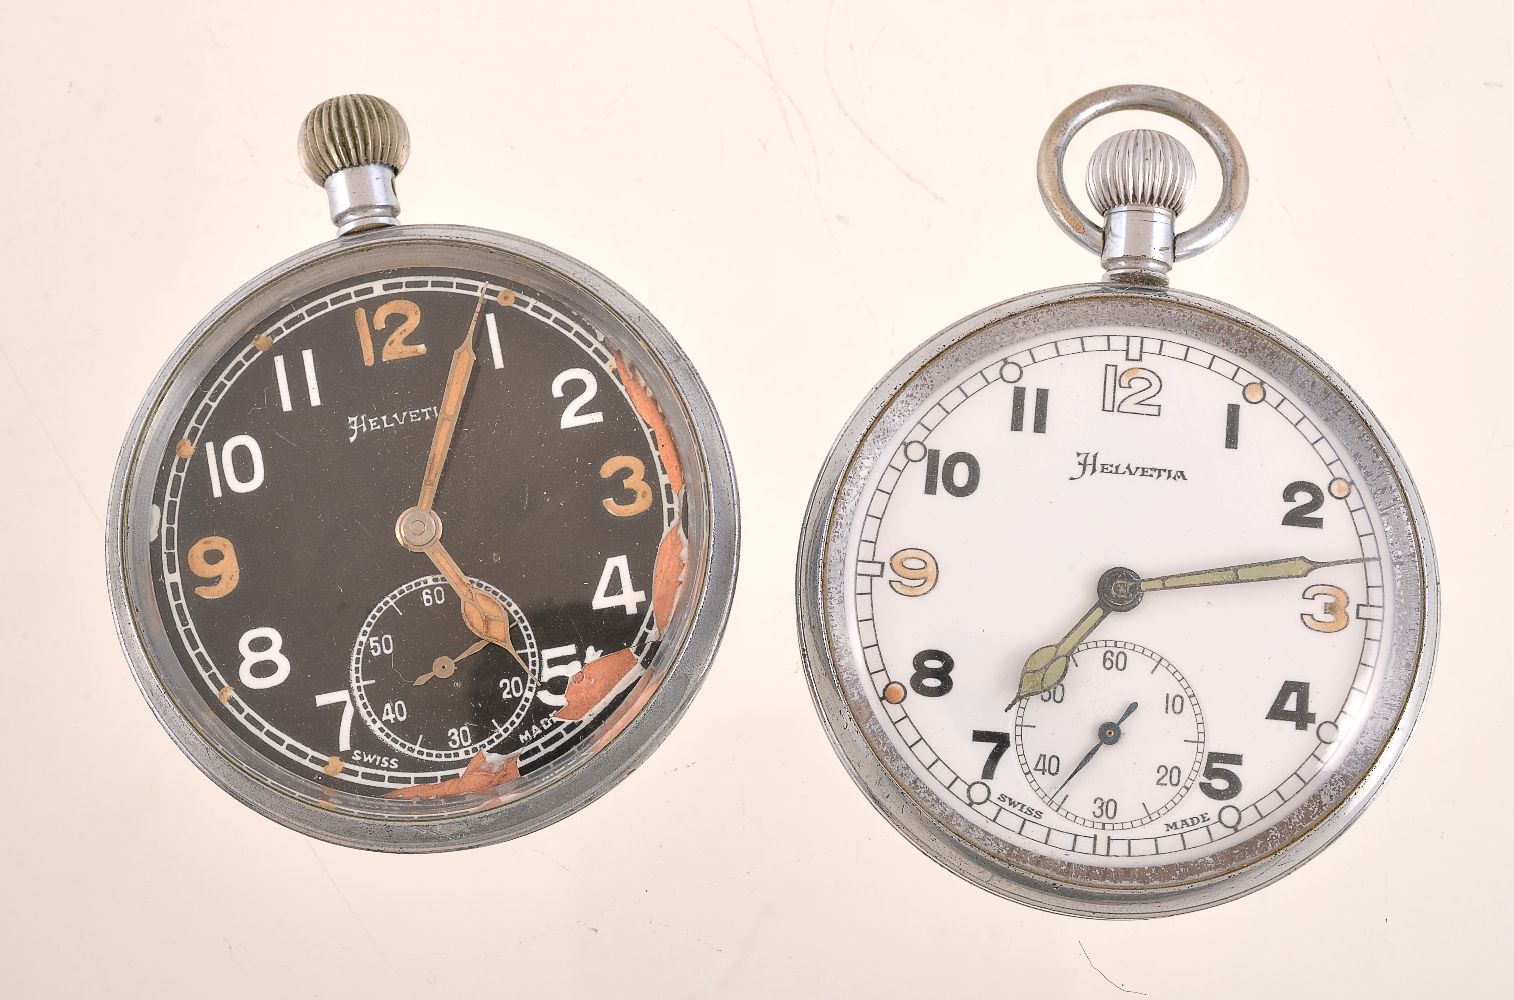 Lot 41 - Helvetia,Base metal open face keyless wind military pocket watch